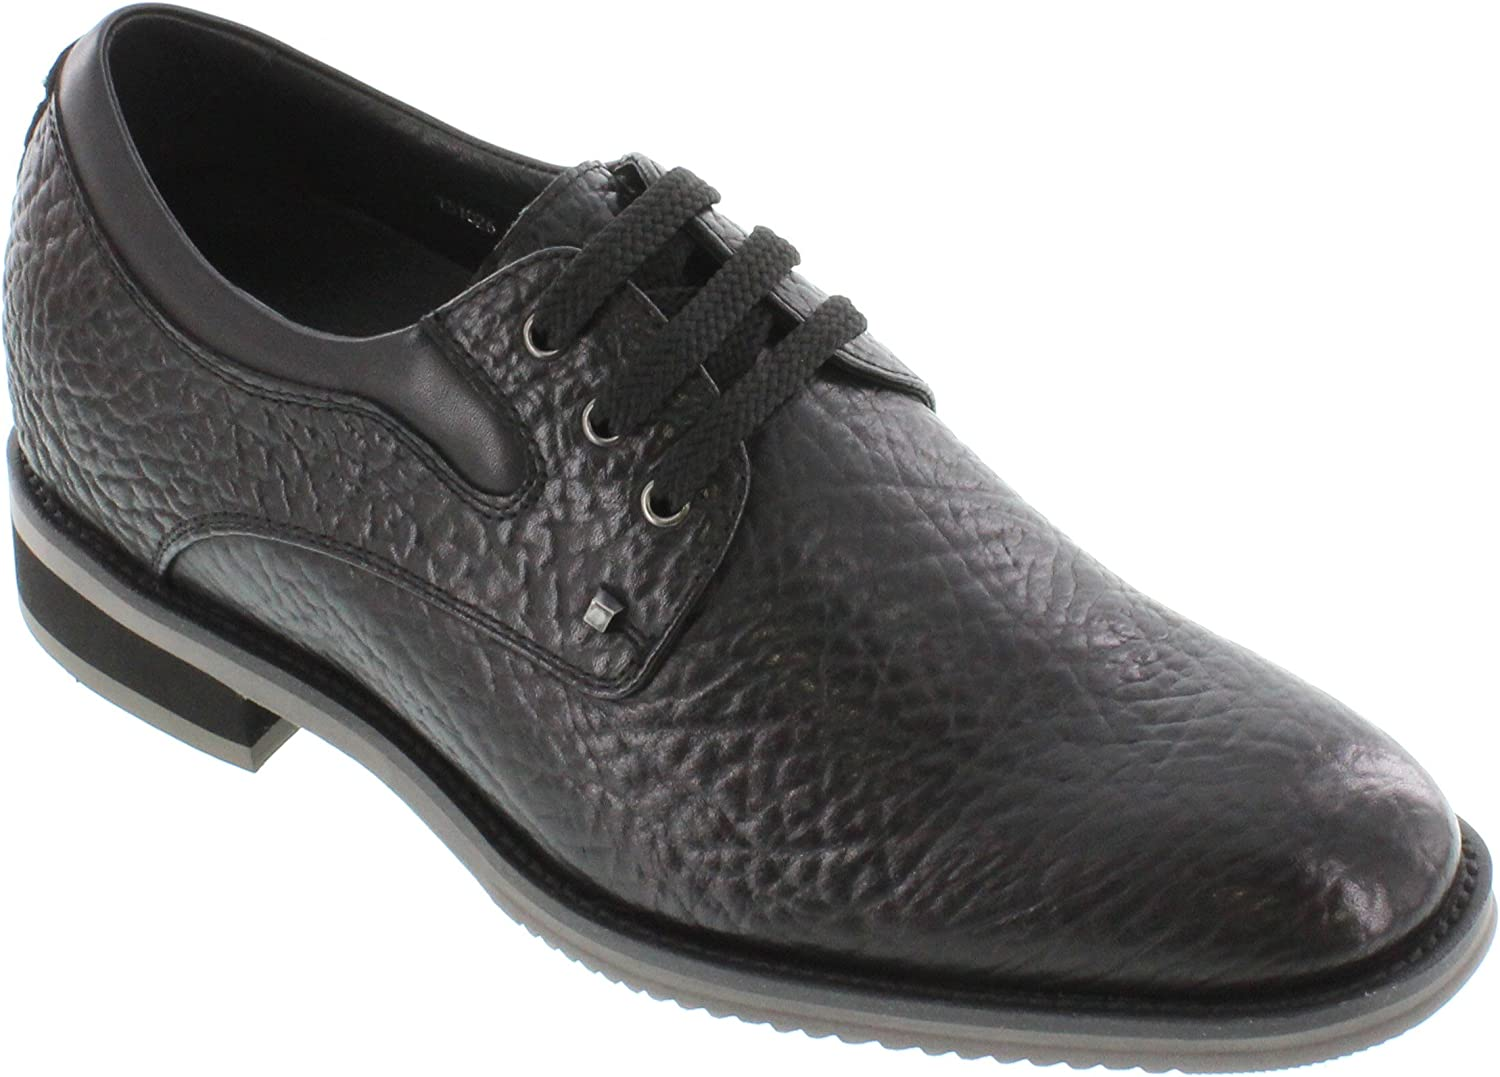 TOTO Men's Invisible Height Increasing Elevator Shoes - Black Tan Leather Lace-up Lightweight Casual Oxfords - 2.8 Inches Taller - H335081